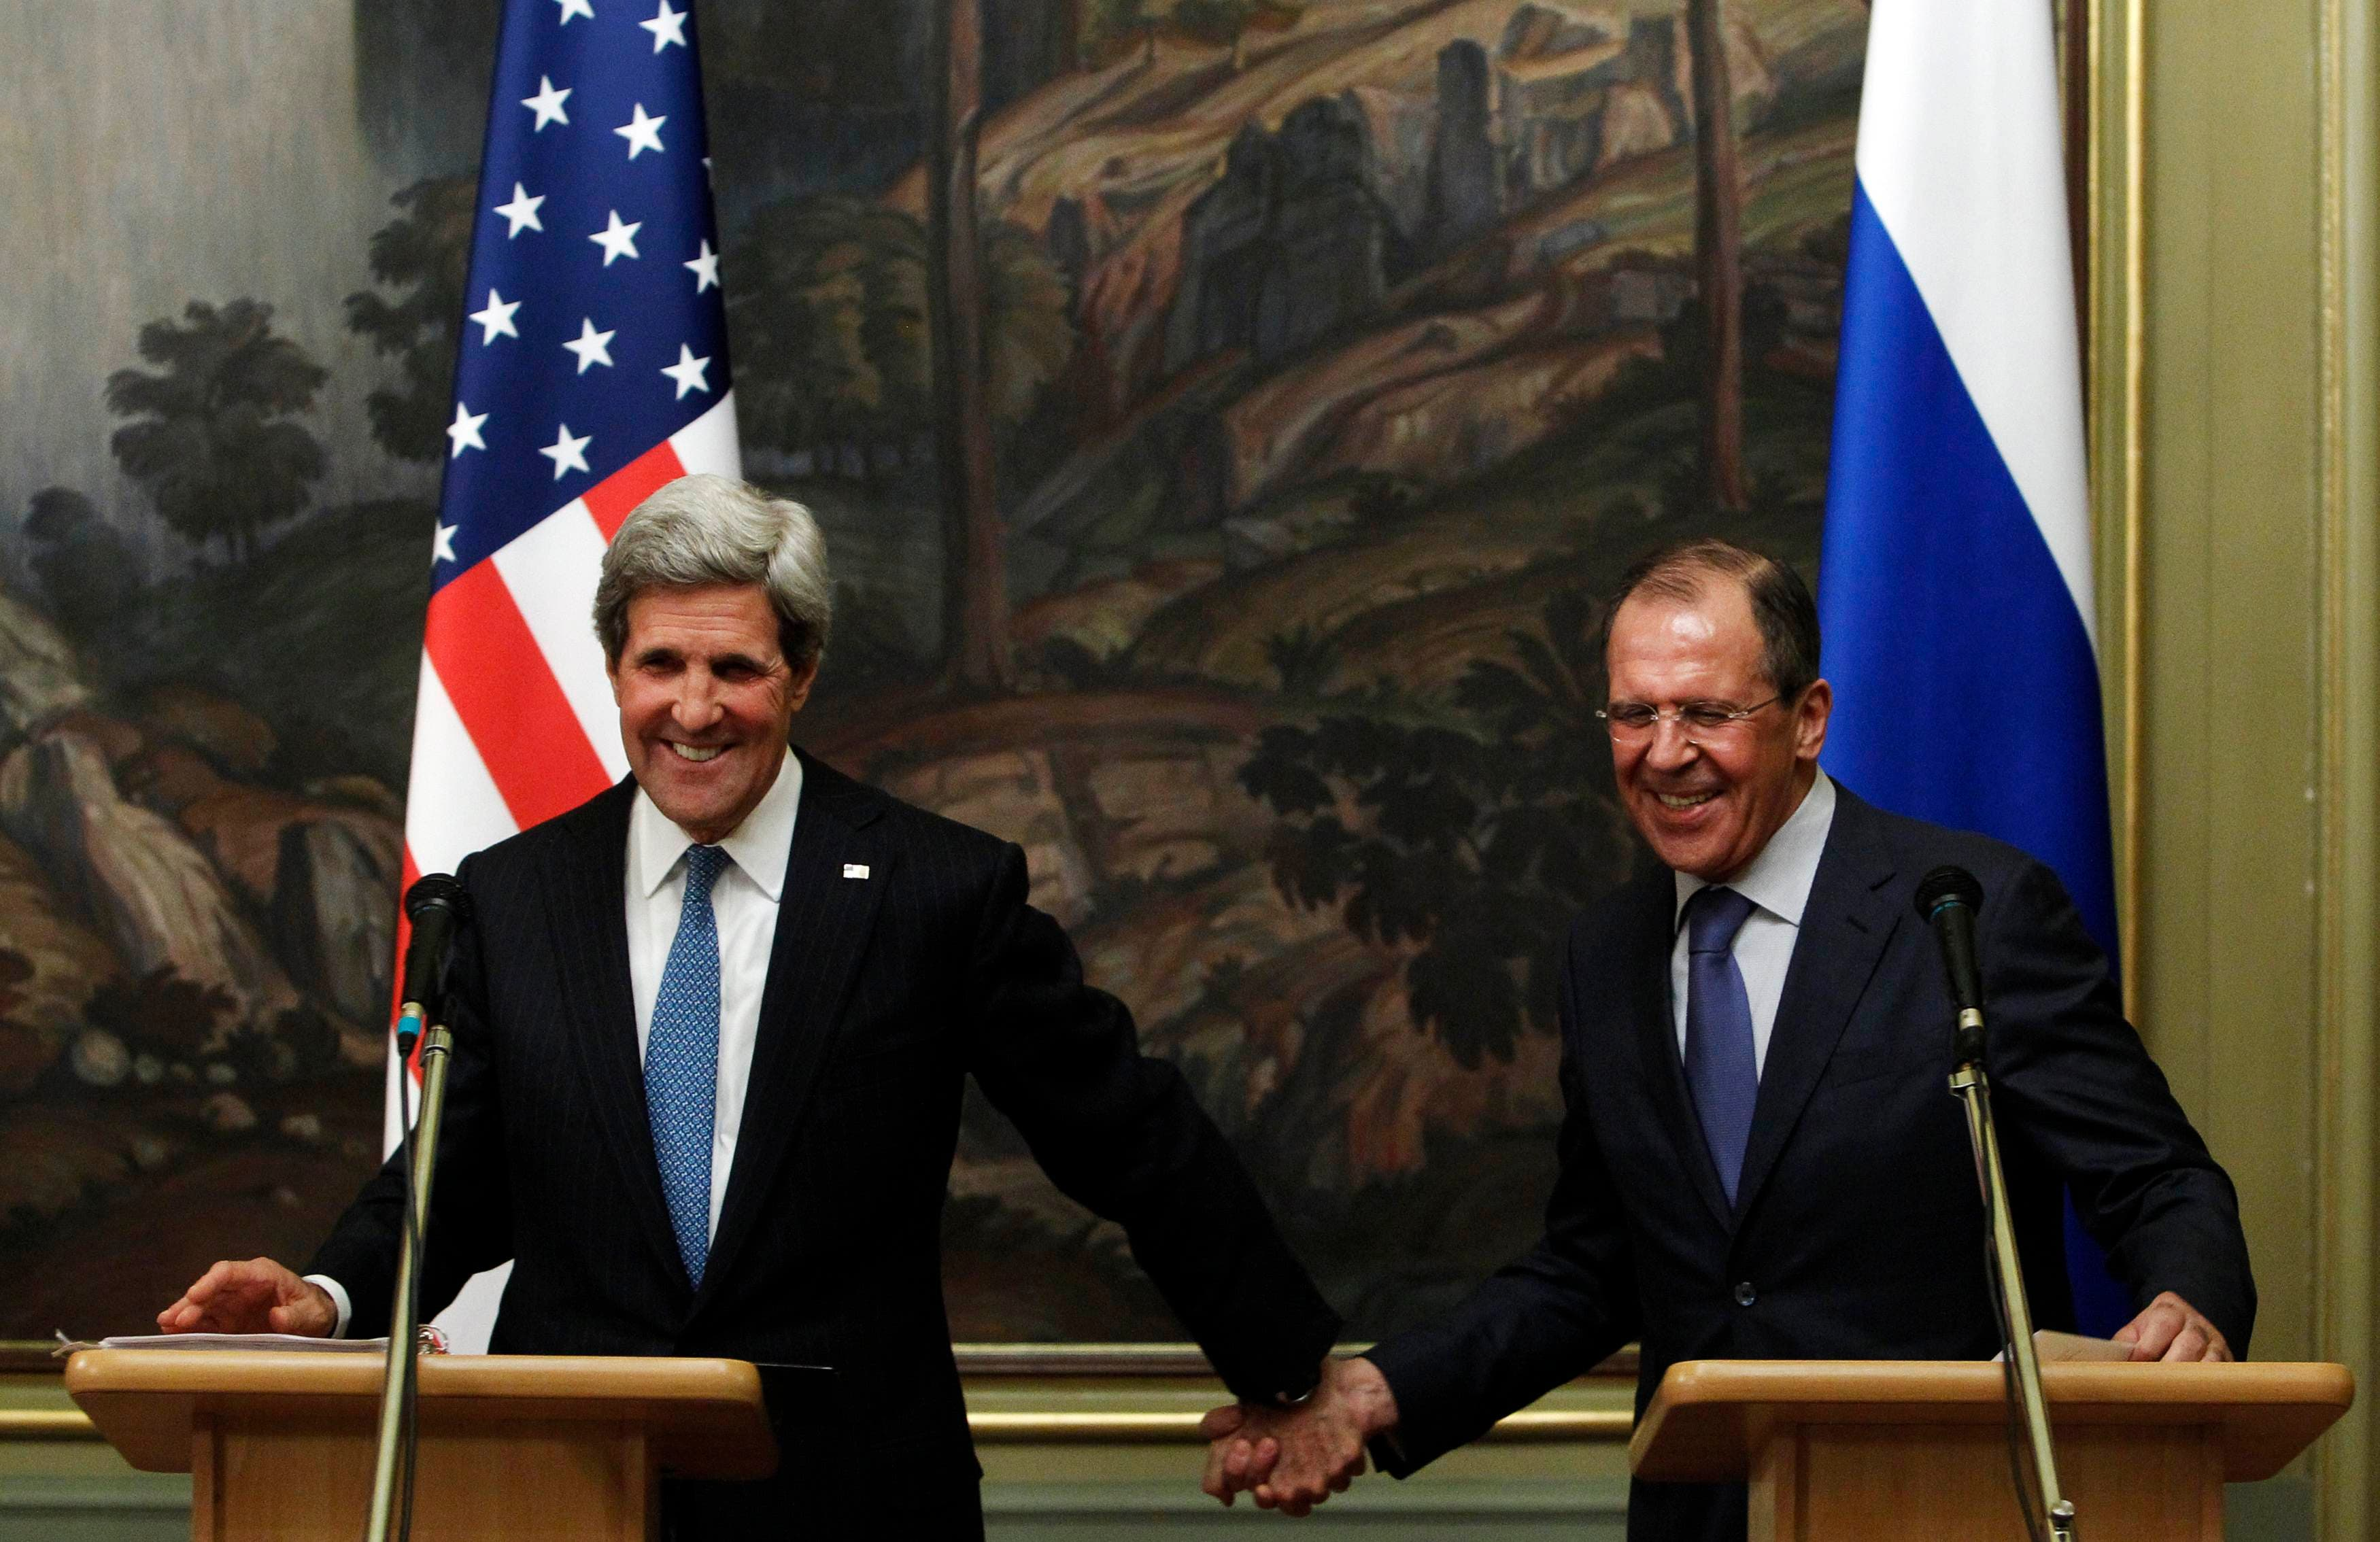 Kerry-Lavrov-conference-edit